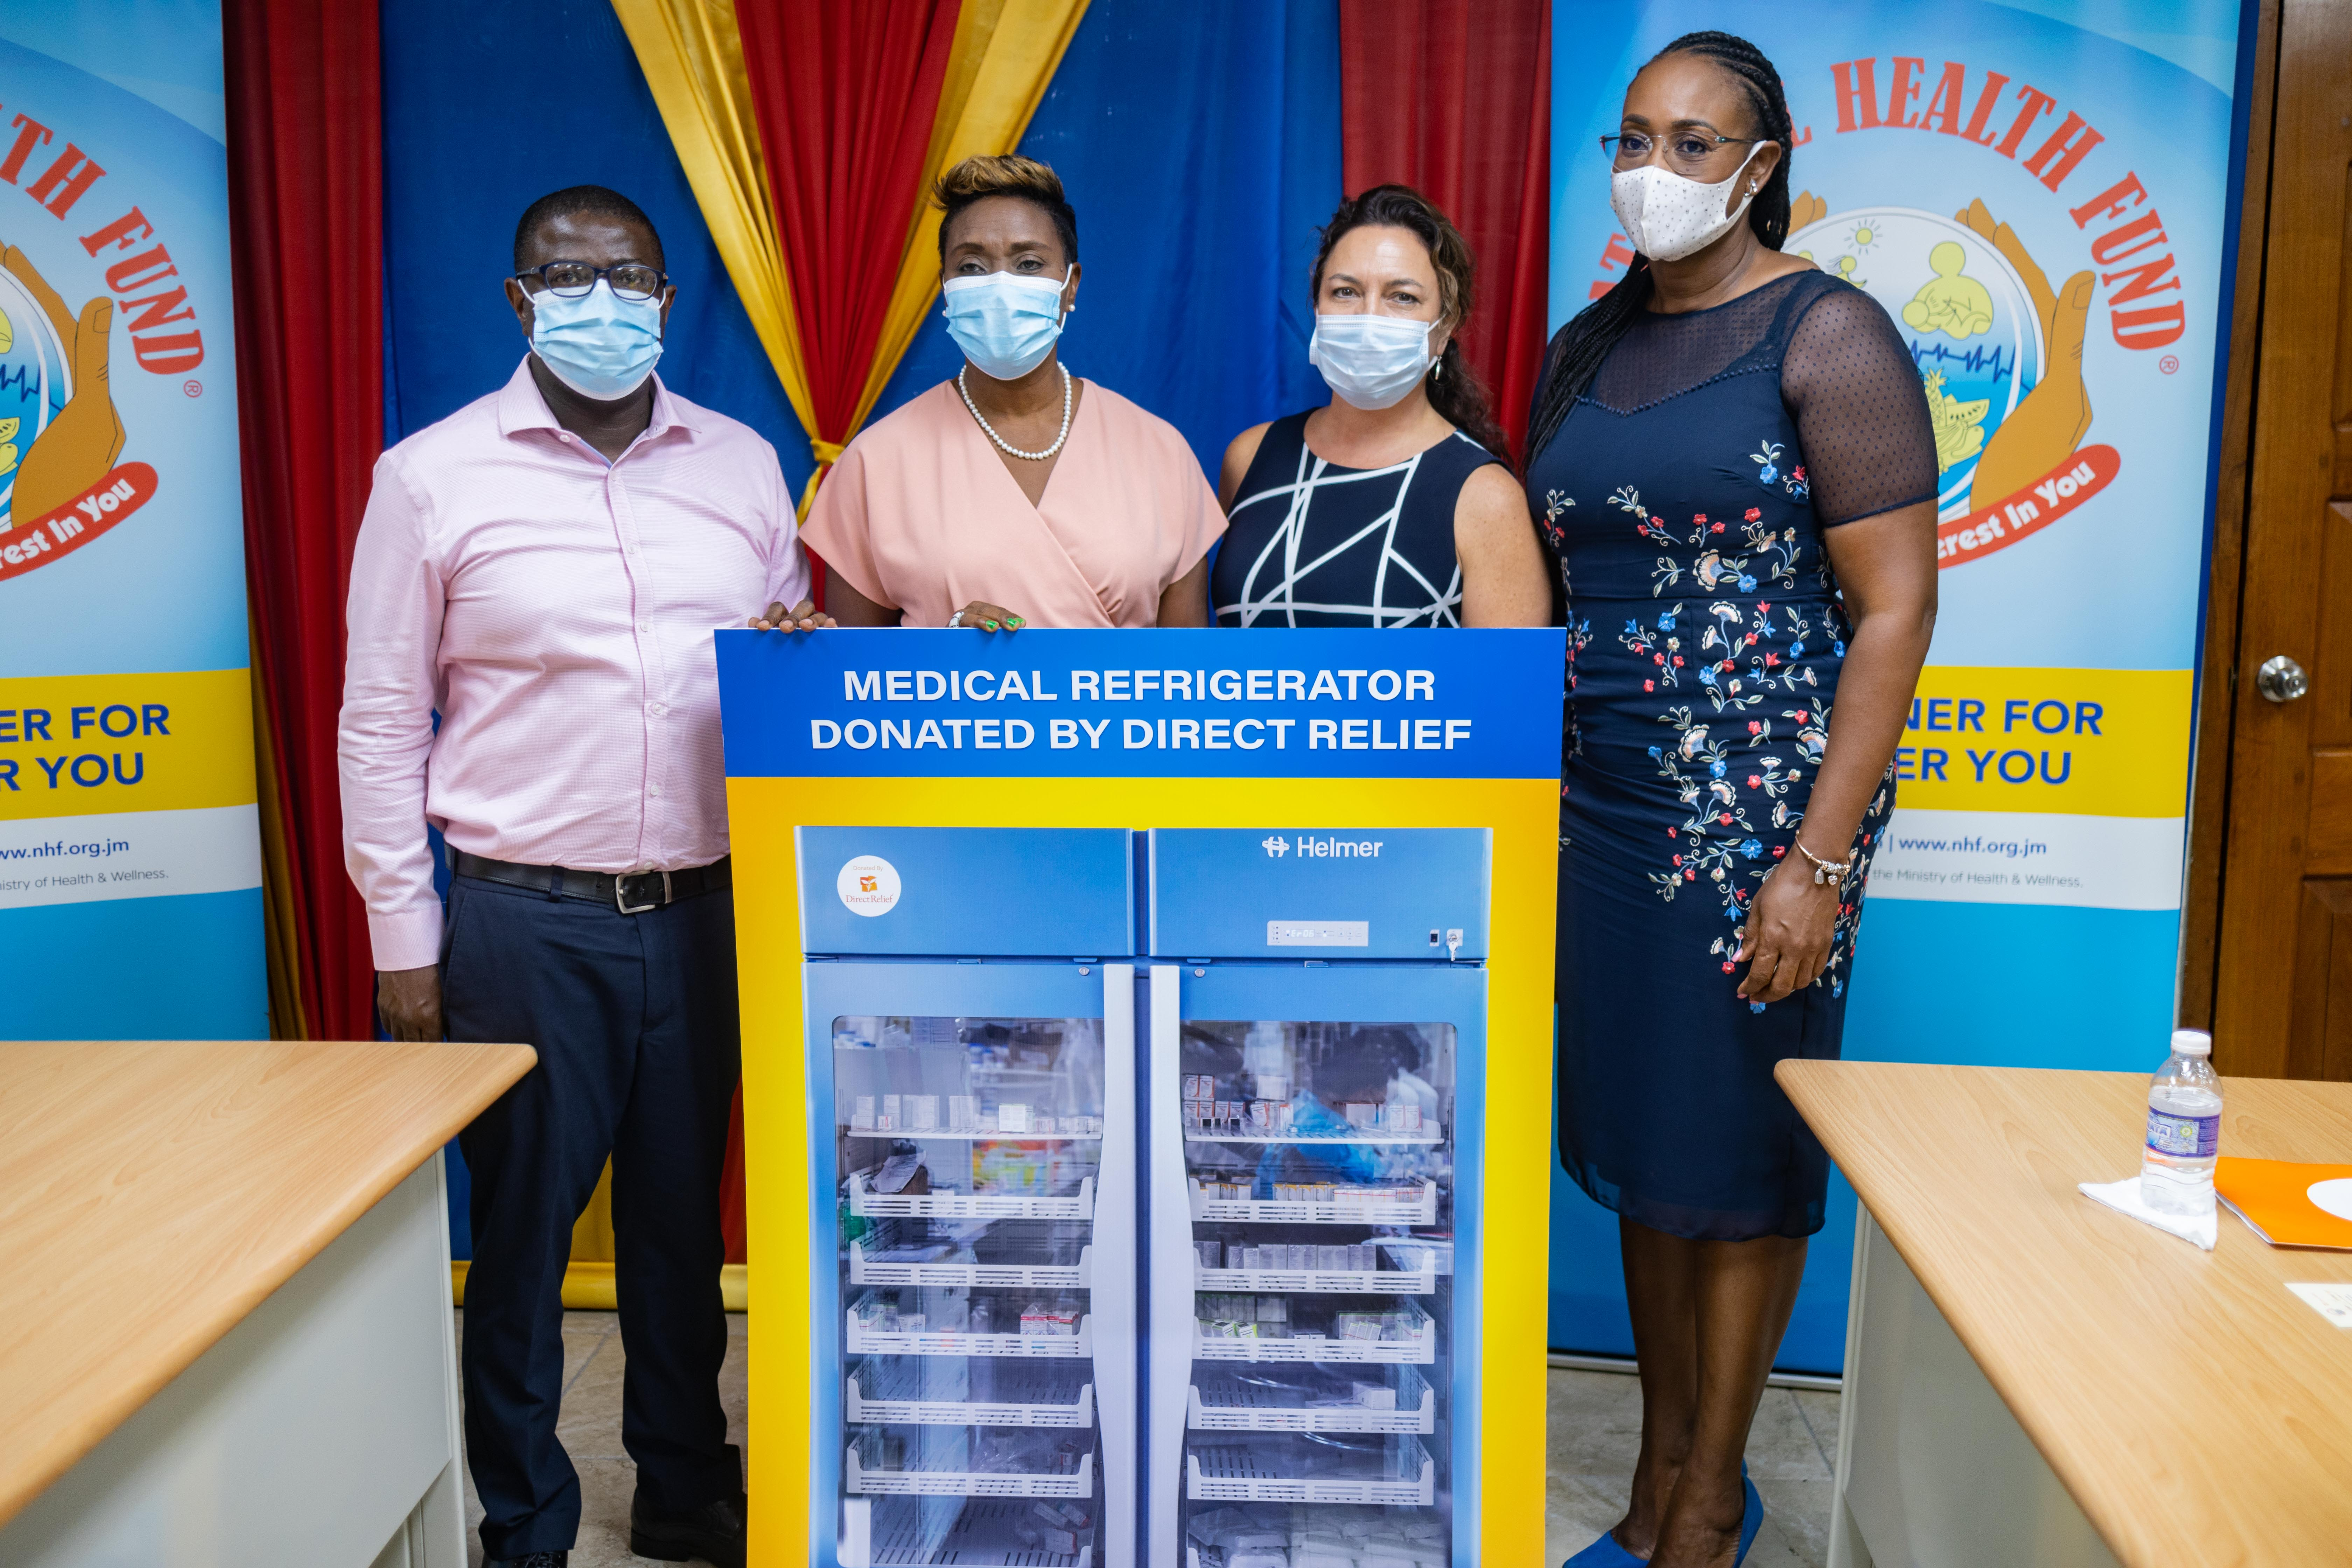 Direct Relief donated 20 medical refrigerators for the storage of temperature-sensitive pharmaceuticals items to the National Health Fund.